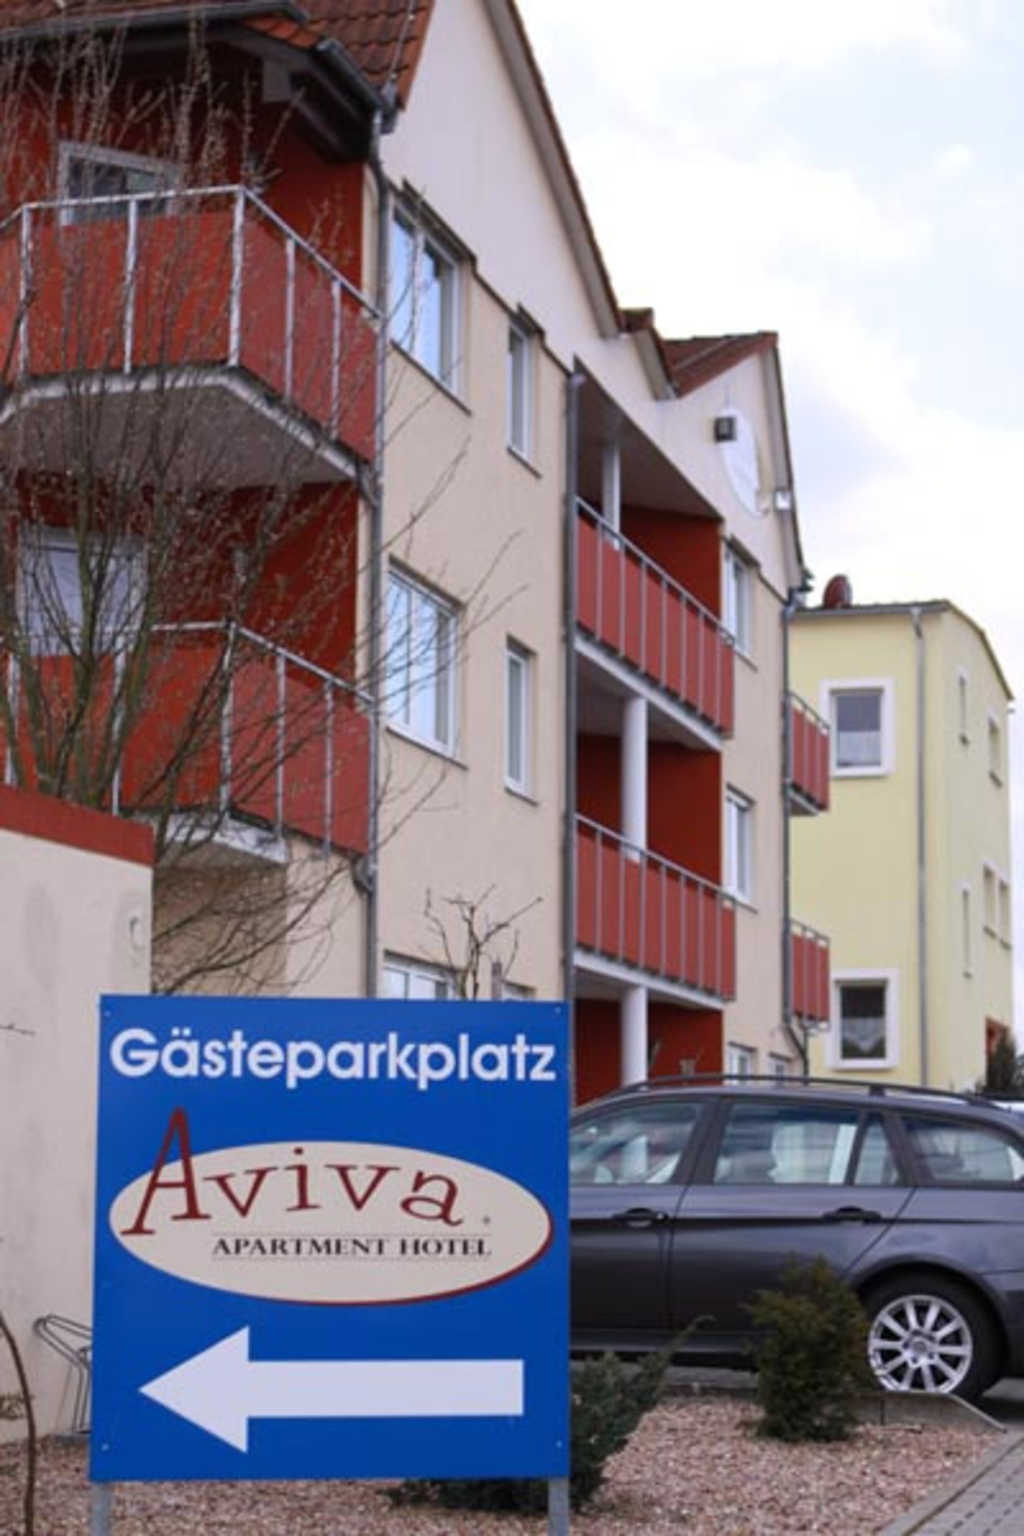 AVIVA Apartment Hotel, 102 Apartment für 1 Person